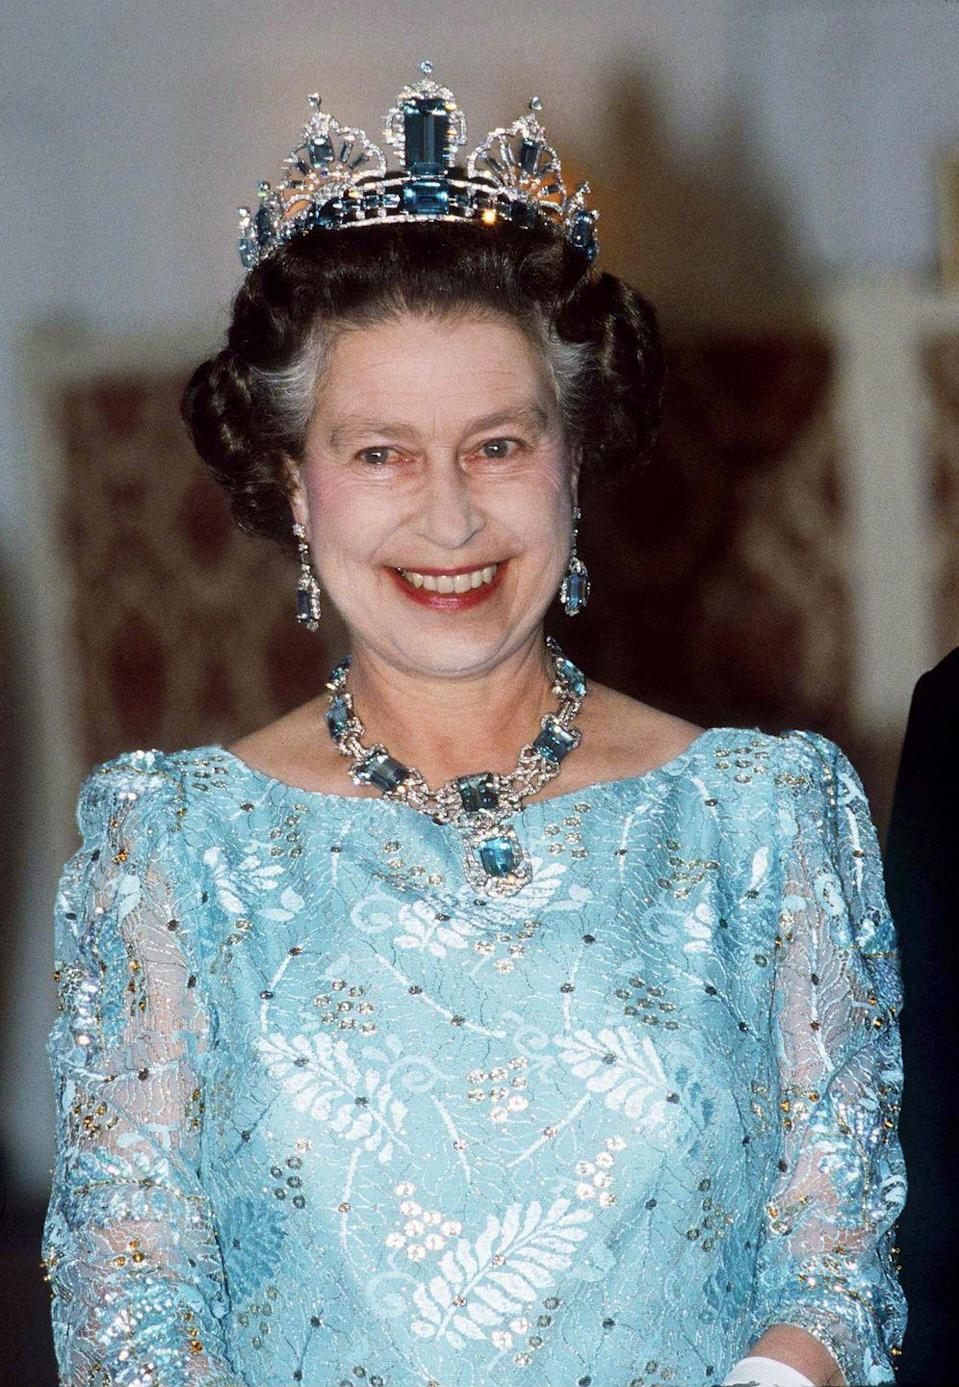 """<p>Here the Queen dons a diamond and aquamarine earrings, and necklace set, gifted to her by the People of Brazil for her coronation. <a href=""""http://orderofsplendor.blogspot.com/2013/03/tiara-thursday-brazilian-aquamarine.html"""" rel=""""nofollow noopener"""" target=""""_blank"""" data-ylk=""""slk:Four years later, she commissioned Garrard to make her a tiara that matches nicely"""" class=""""link rapid-noclick-resp"""">Four years later, she commissioned Garrard to make her a tiara that matches nicely</a>. The uprights are apparently detachable and could be used as brooches. She's seen wearing the set here on October 15, 1986.</p>"""